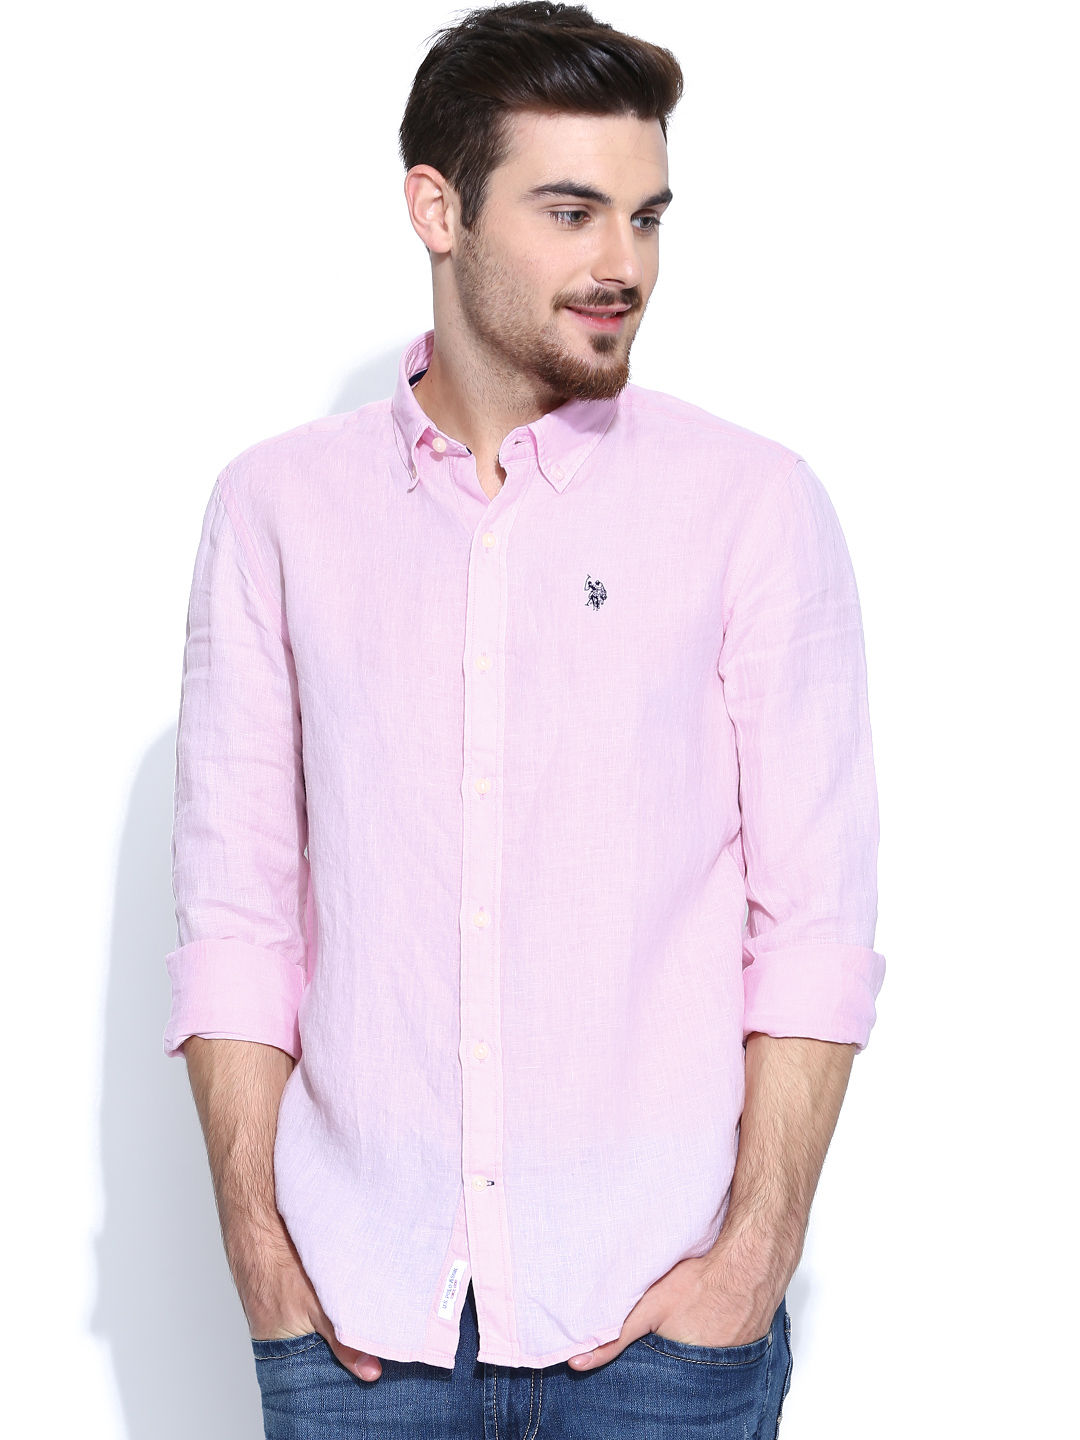 casual pink shirt for men men light pink shirt - buy men light pink shirt online in india UFWOCTV